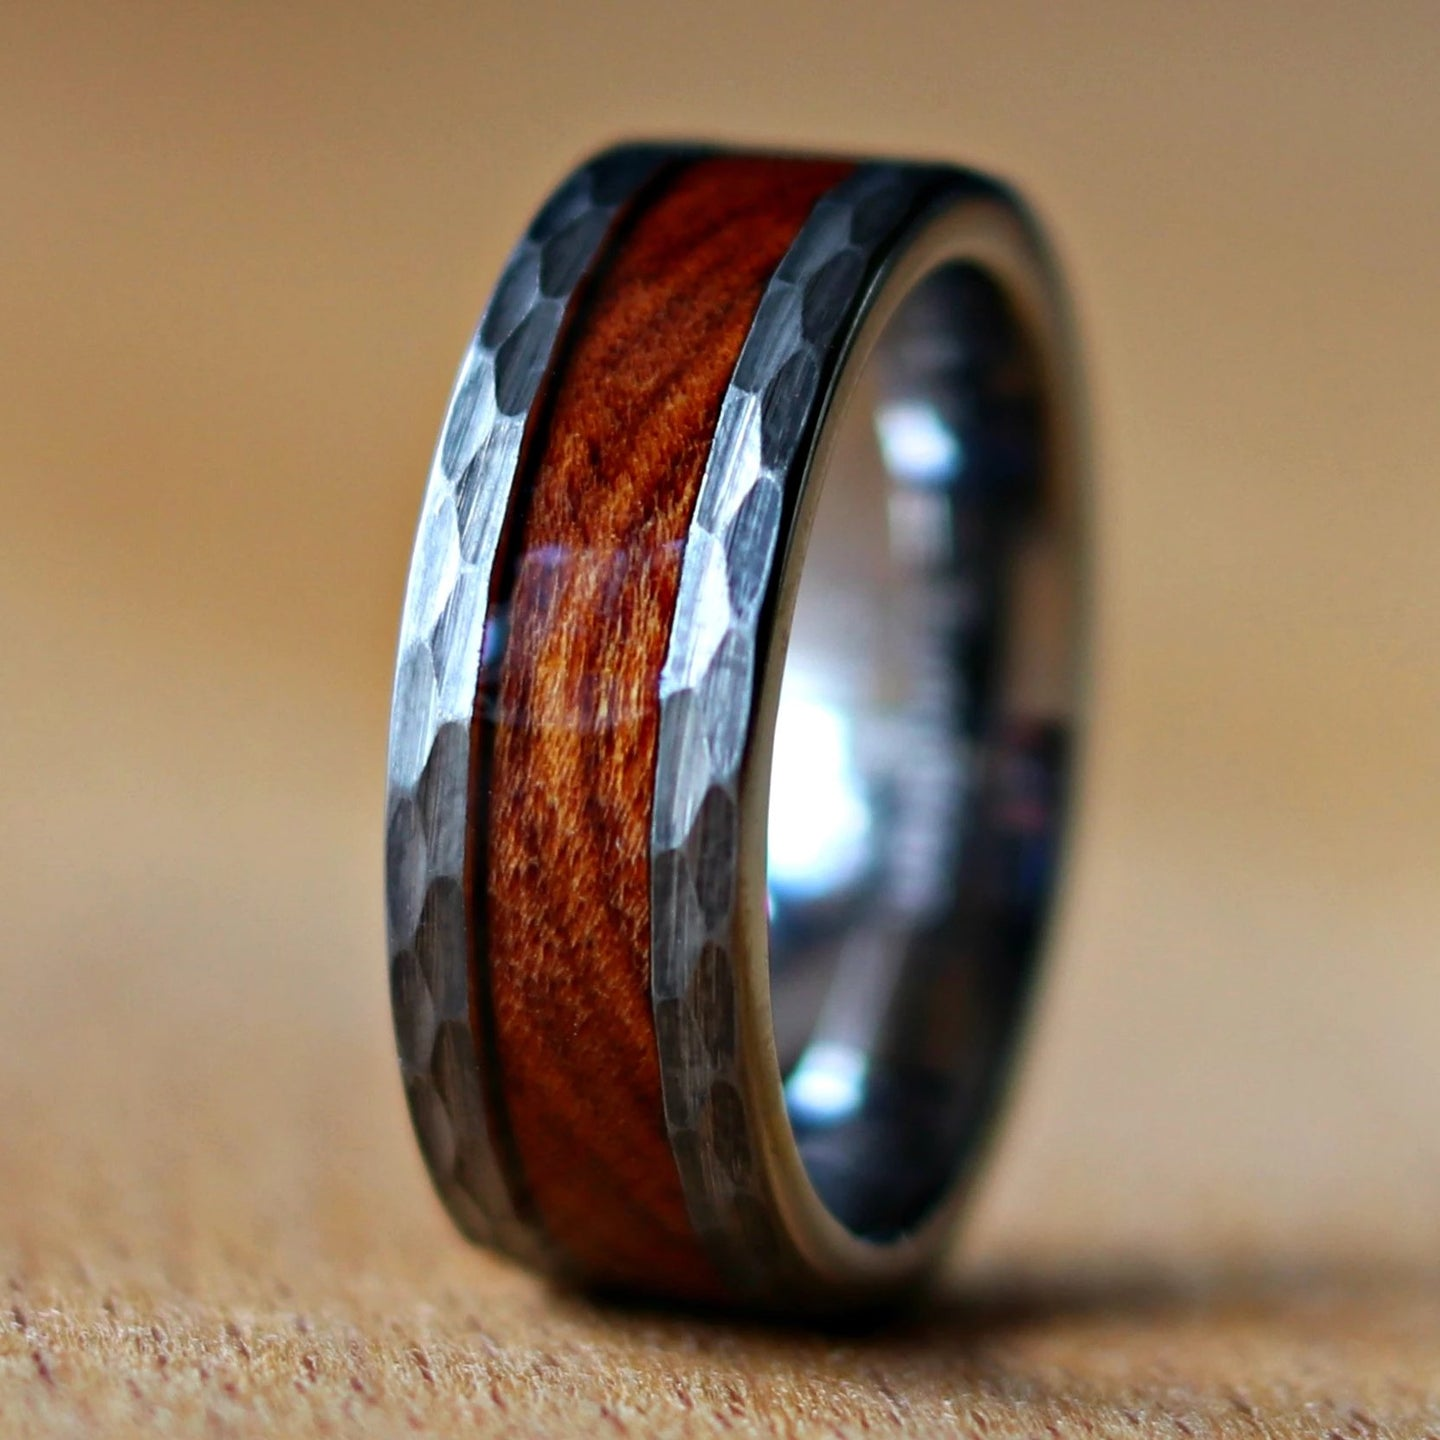 [Buy Unique Men's Wedding Rings Online] - Grand Junction Guy